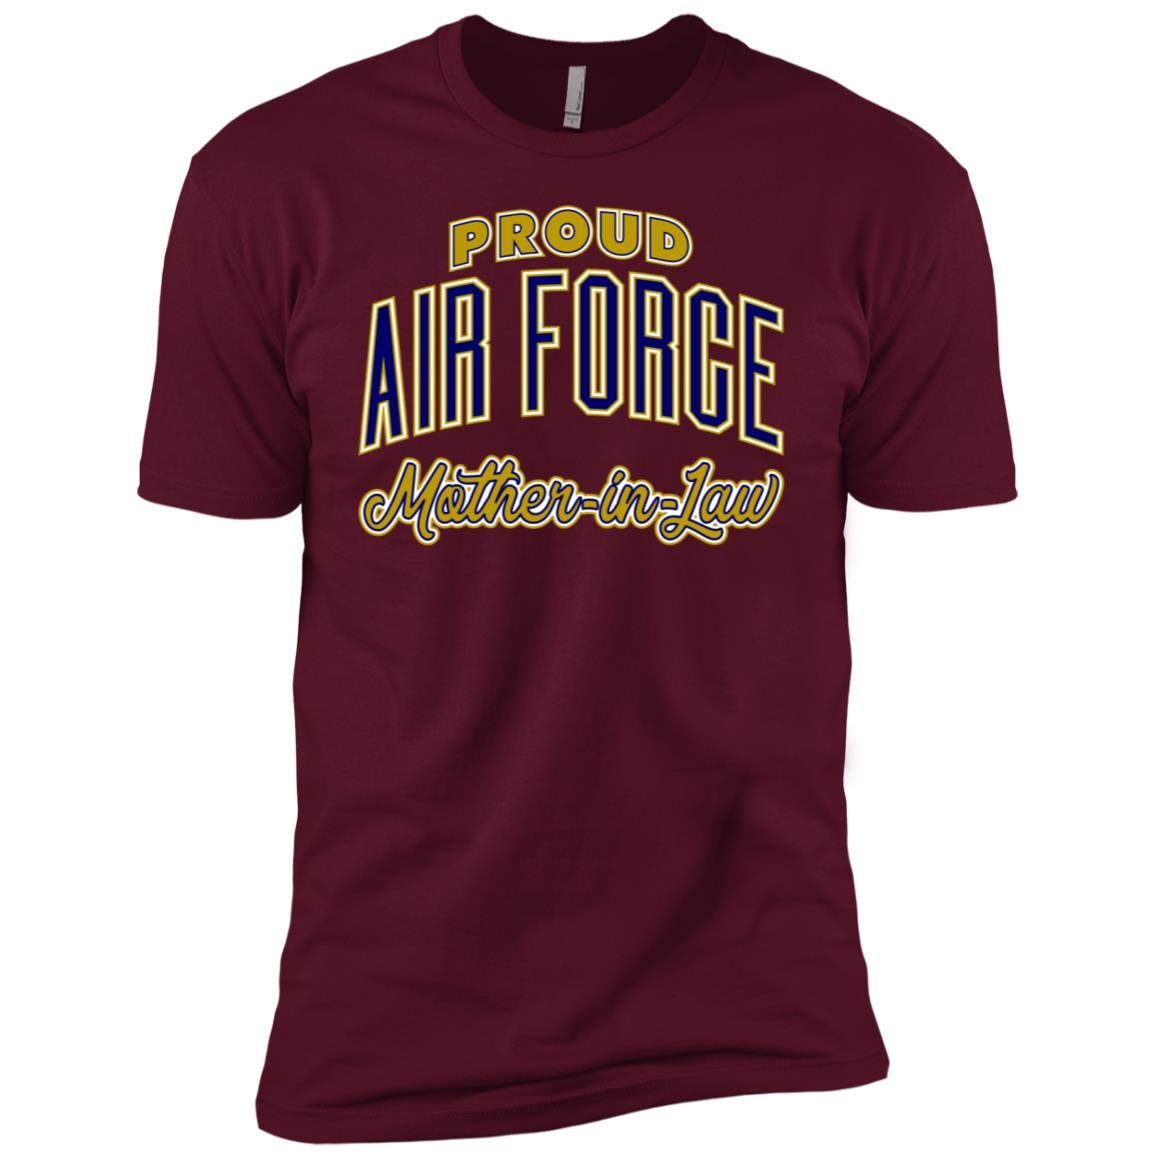 Proud Air Force Mother-in-Law for Women Men Short Sleeve T-Shirt